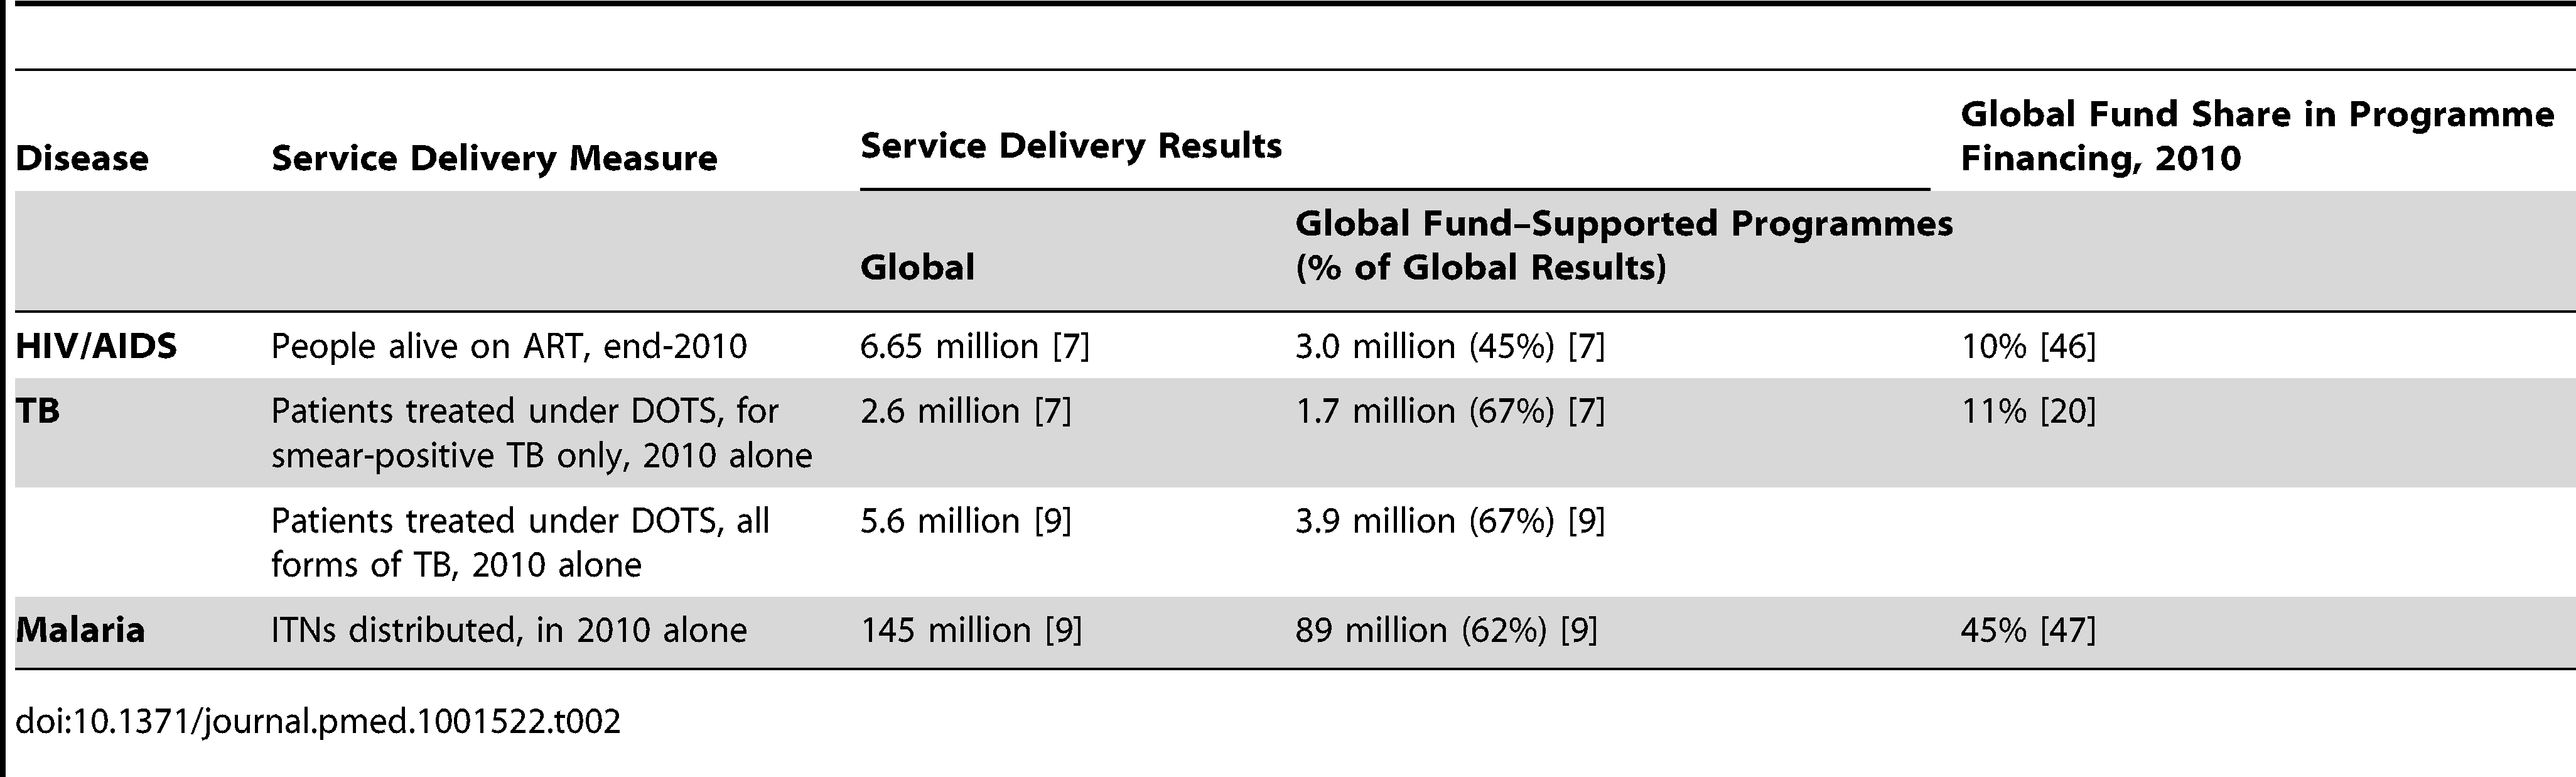 Global Fund's share in service delivery results and programme financing, low- and middle-income countries.